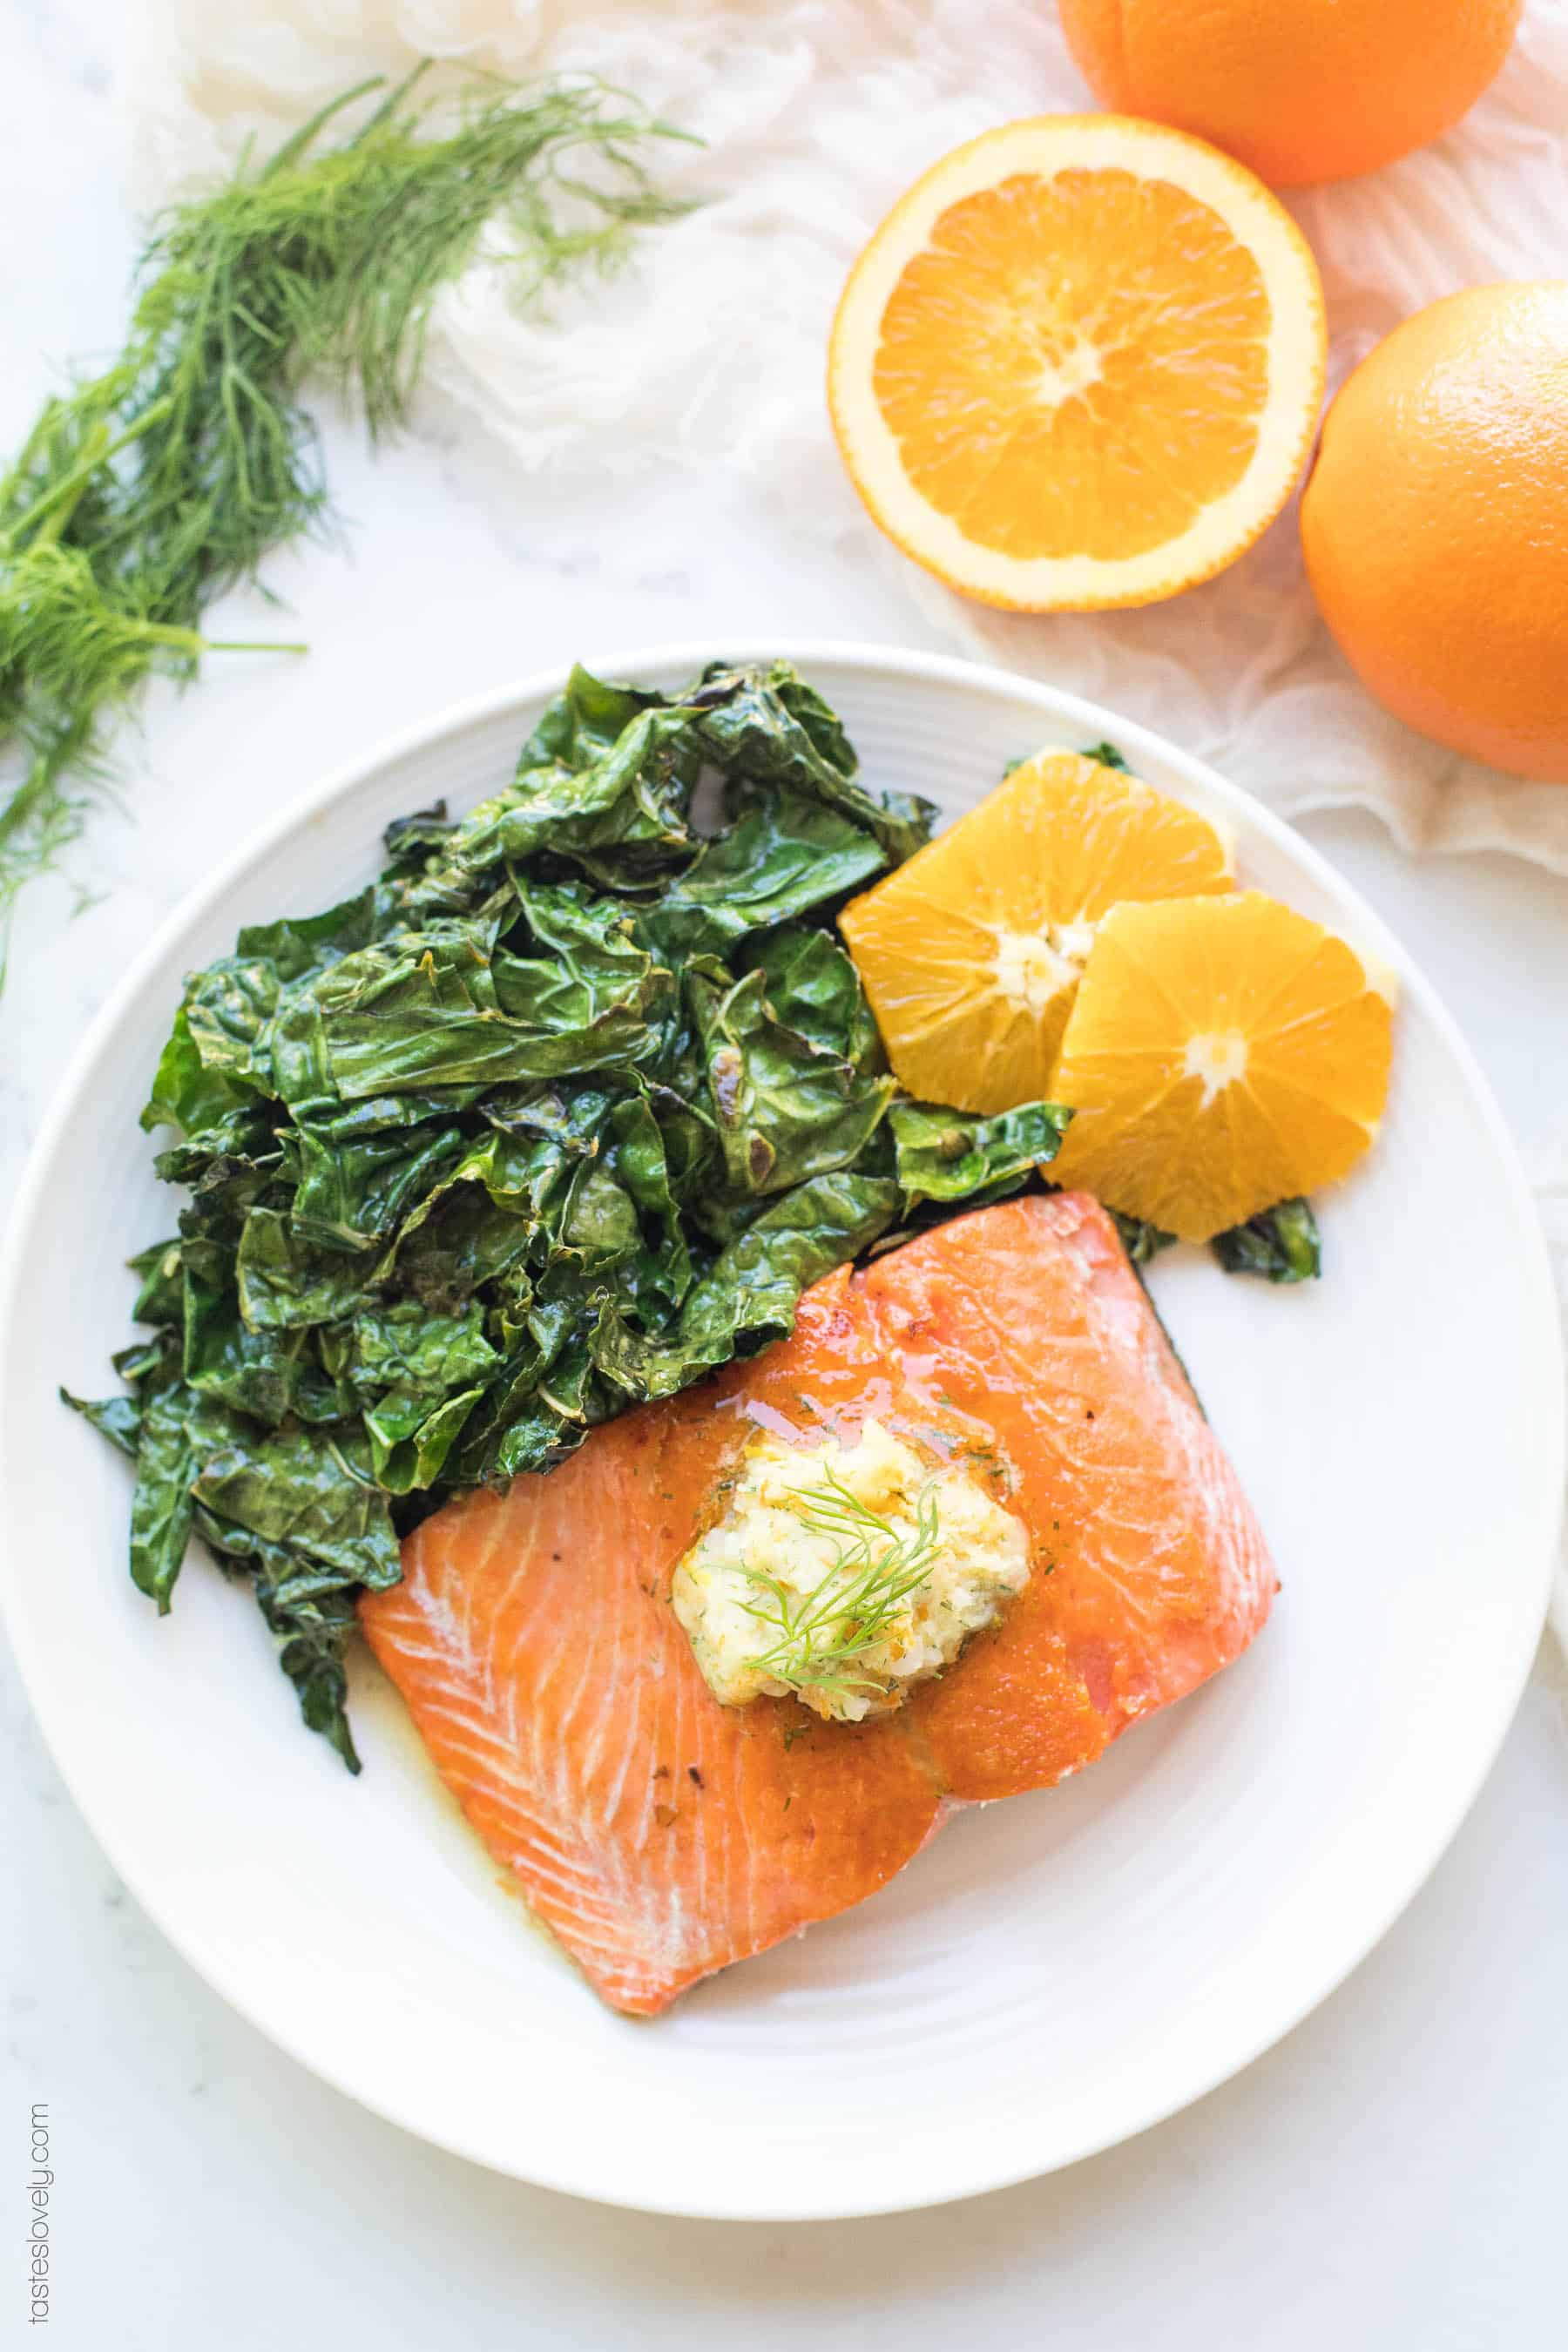 Salmon with Kale Oranges and Butter